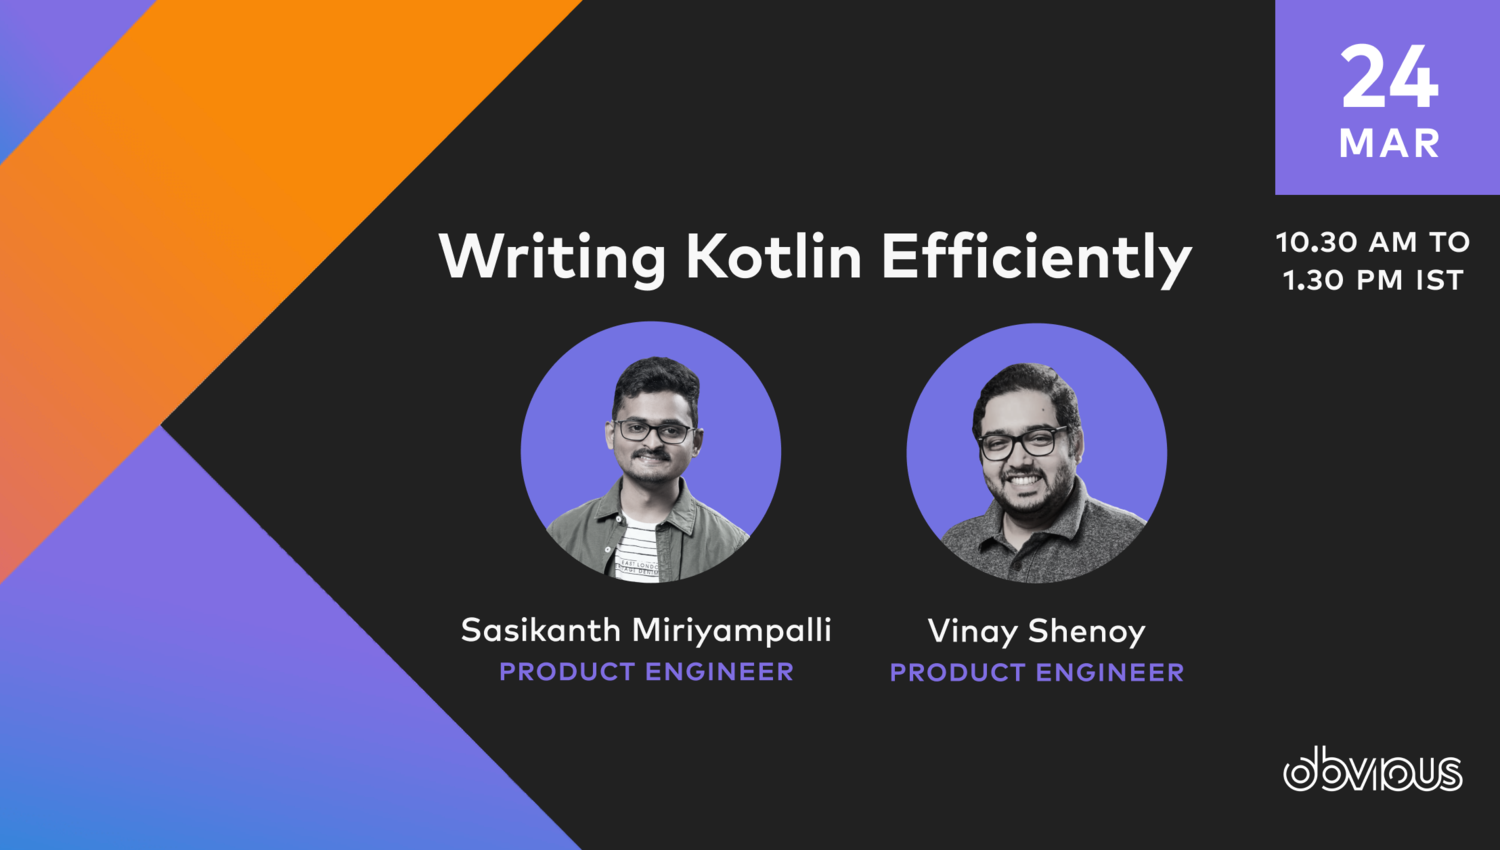 Writing Kotlin efficiently